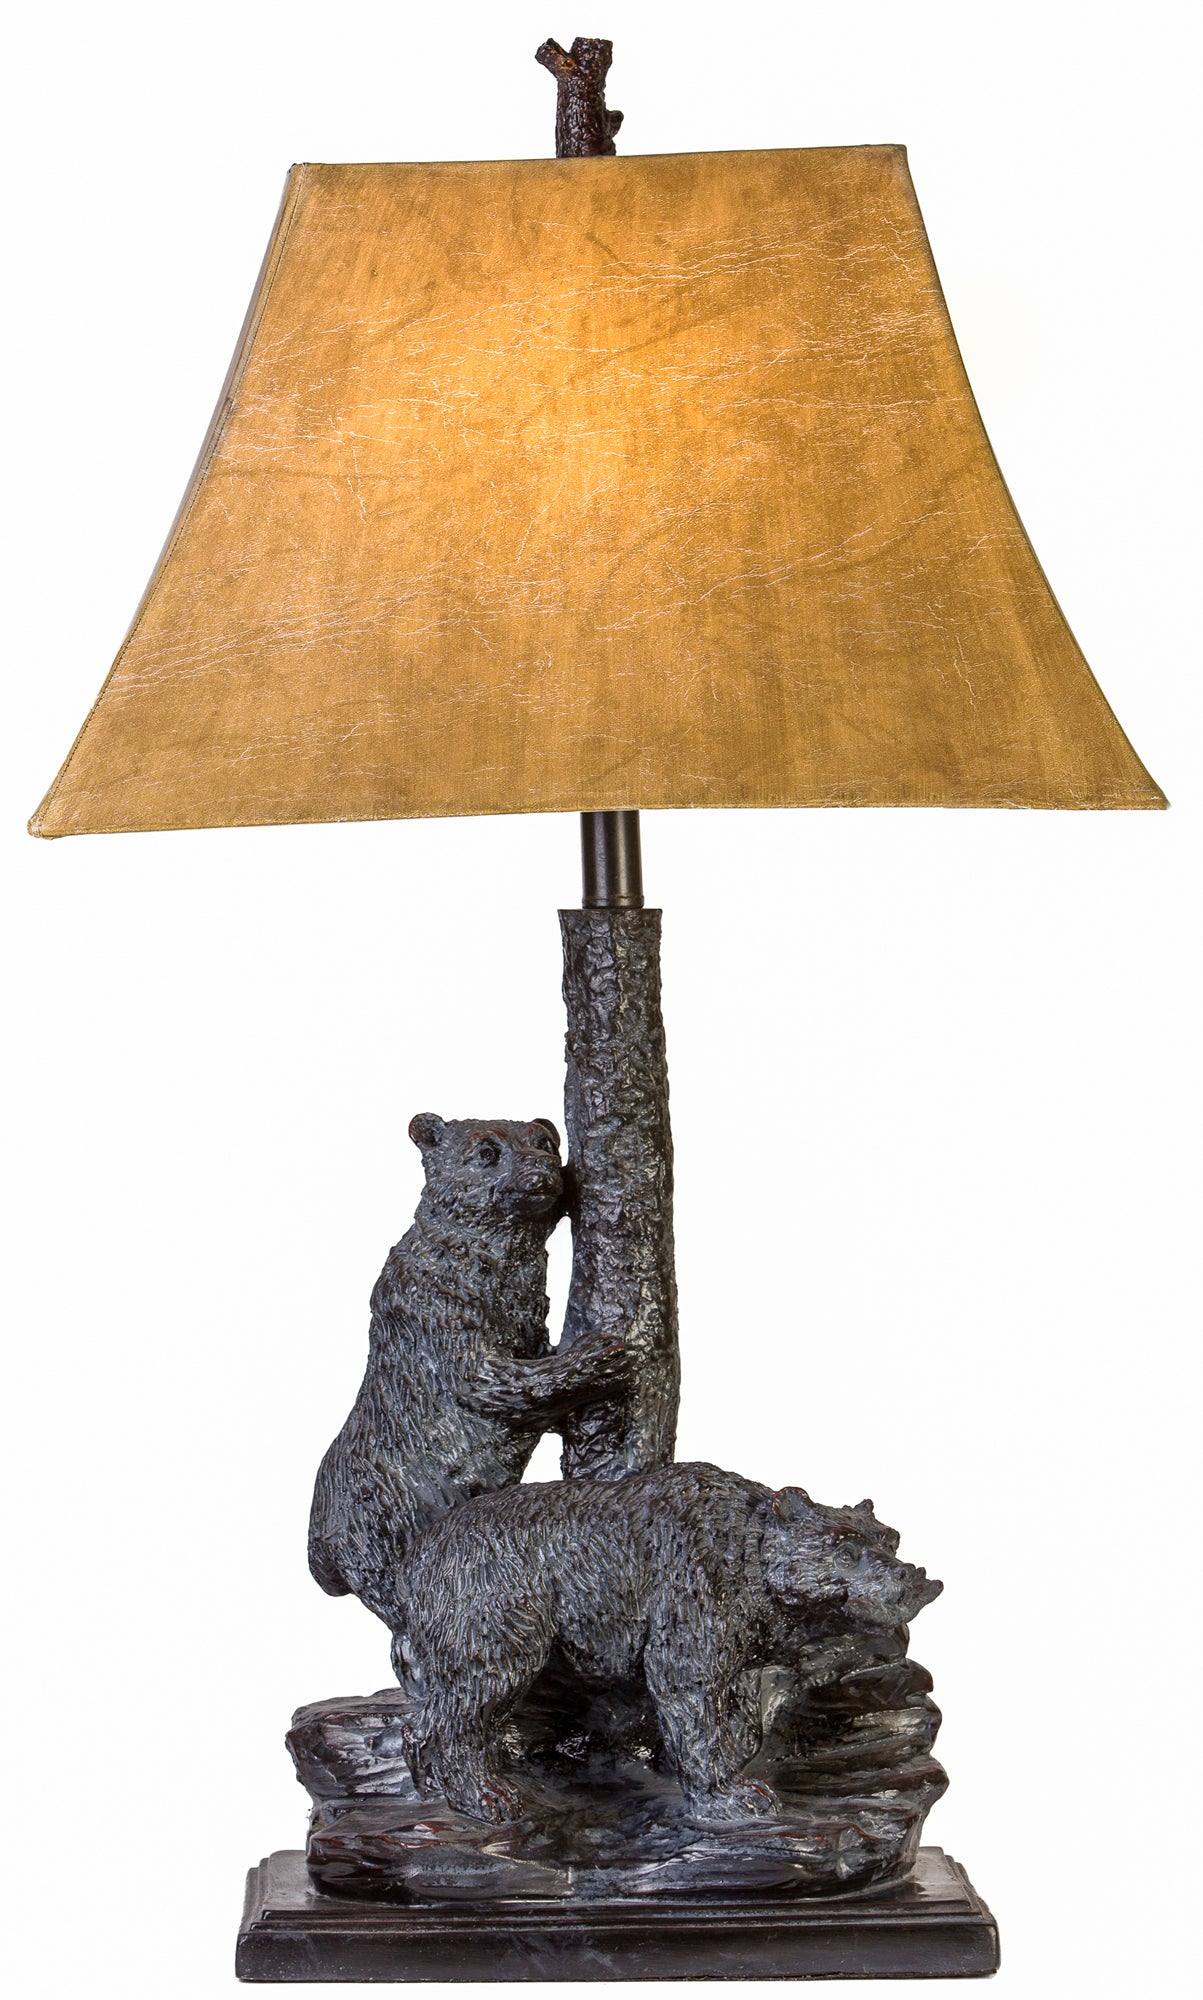 CL5010 - DOUBLE BEAR TABLE LAMP by Vintage Direct Lamps - ThunderHorseCabin.com